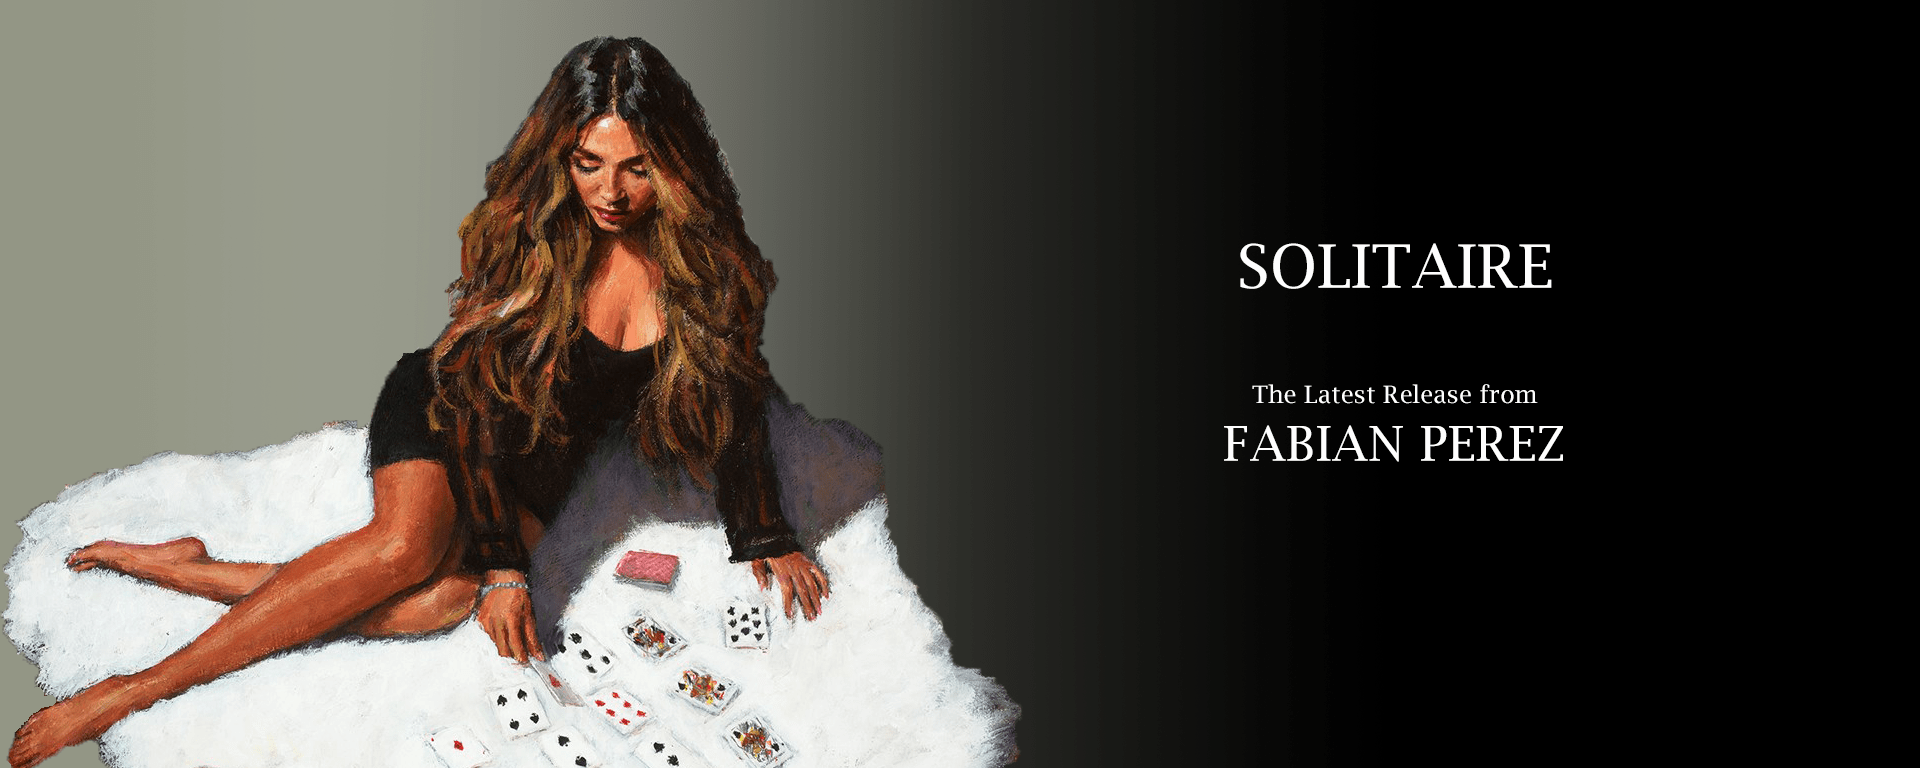 Introducing 'Solitaire' by Fabian Perez